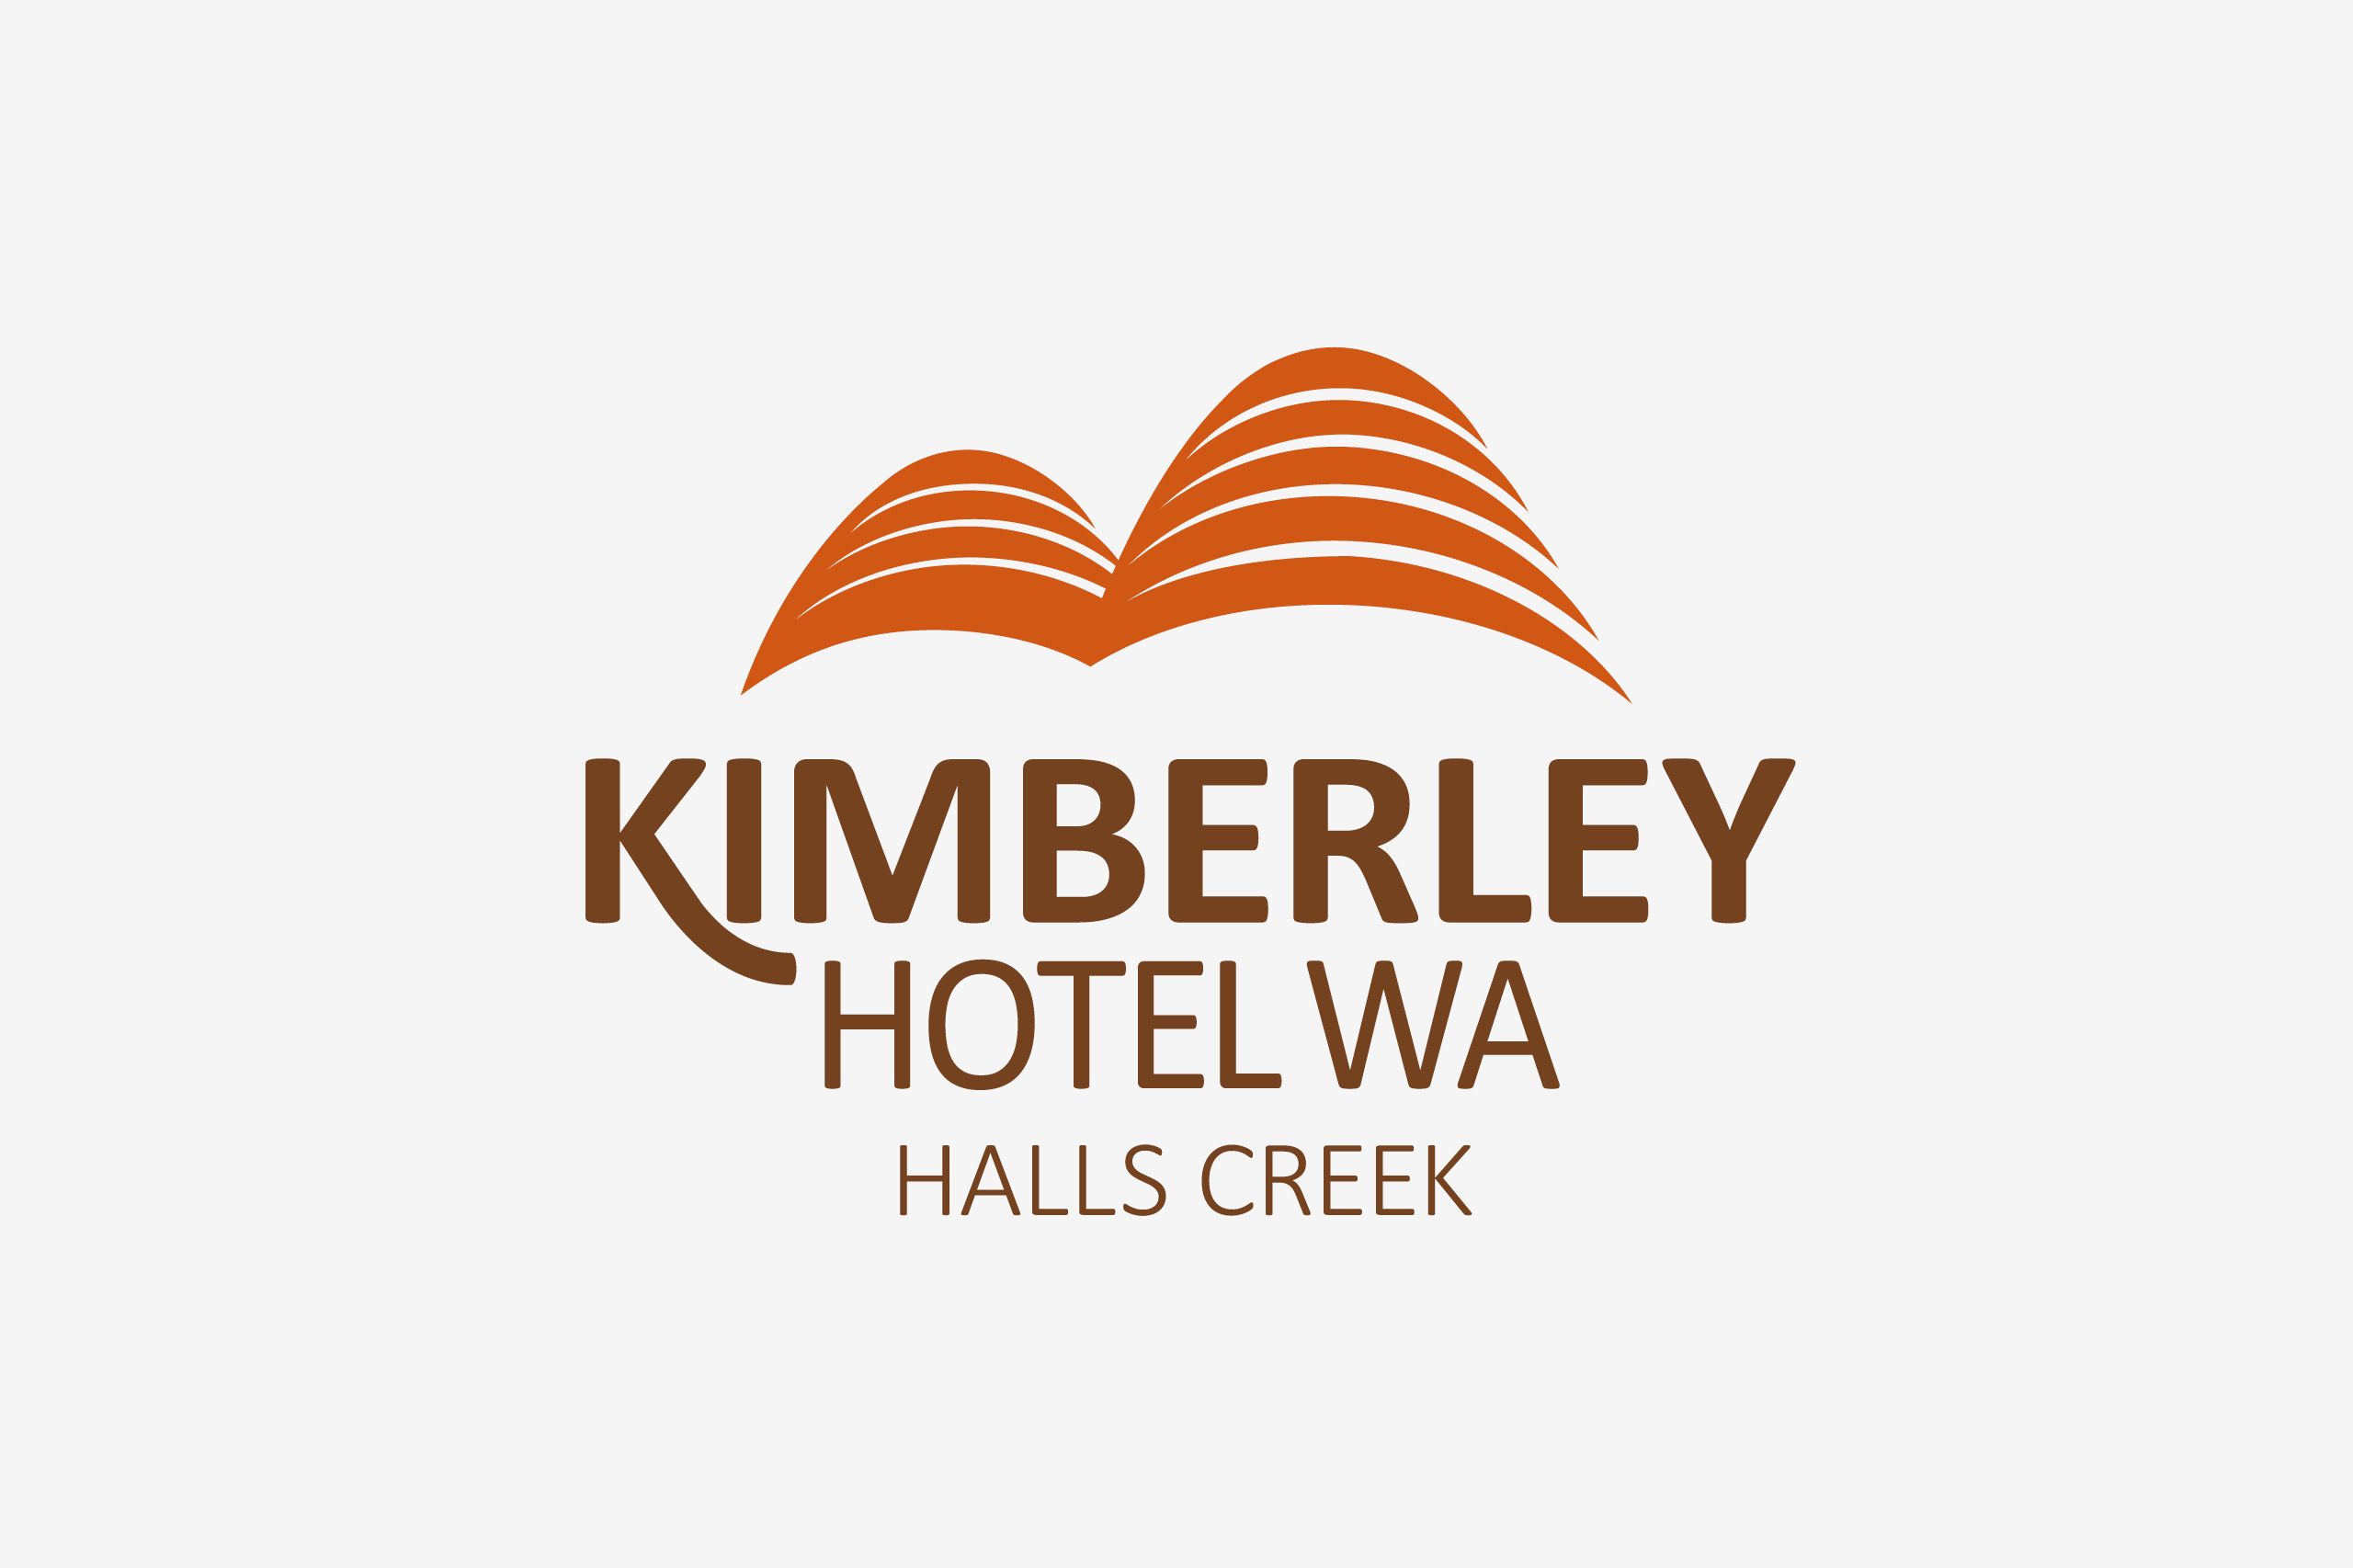 kimberley hotel logo maker and co design